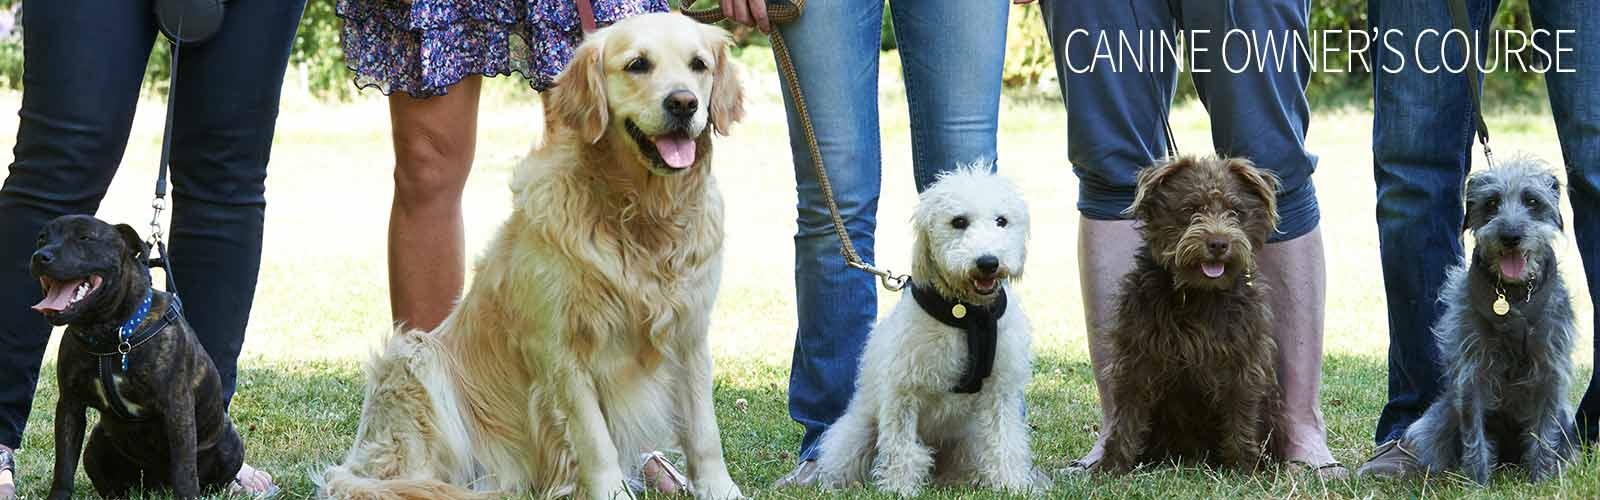 Holistic course for canine owner's